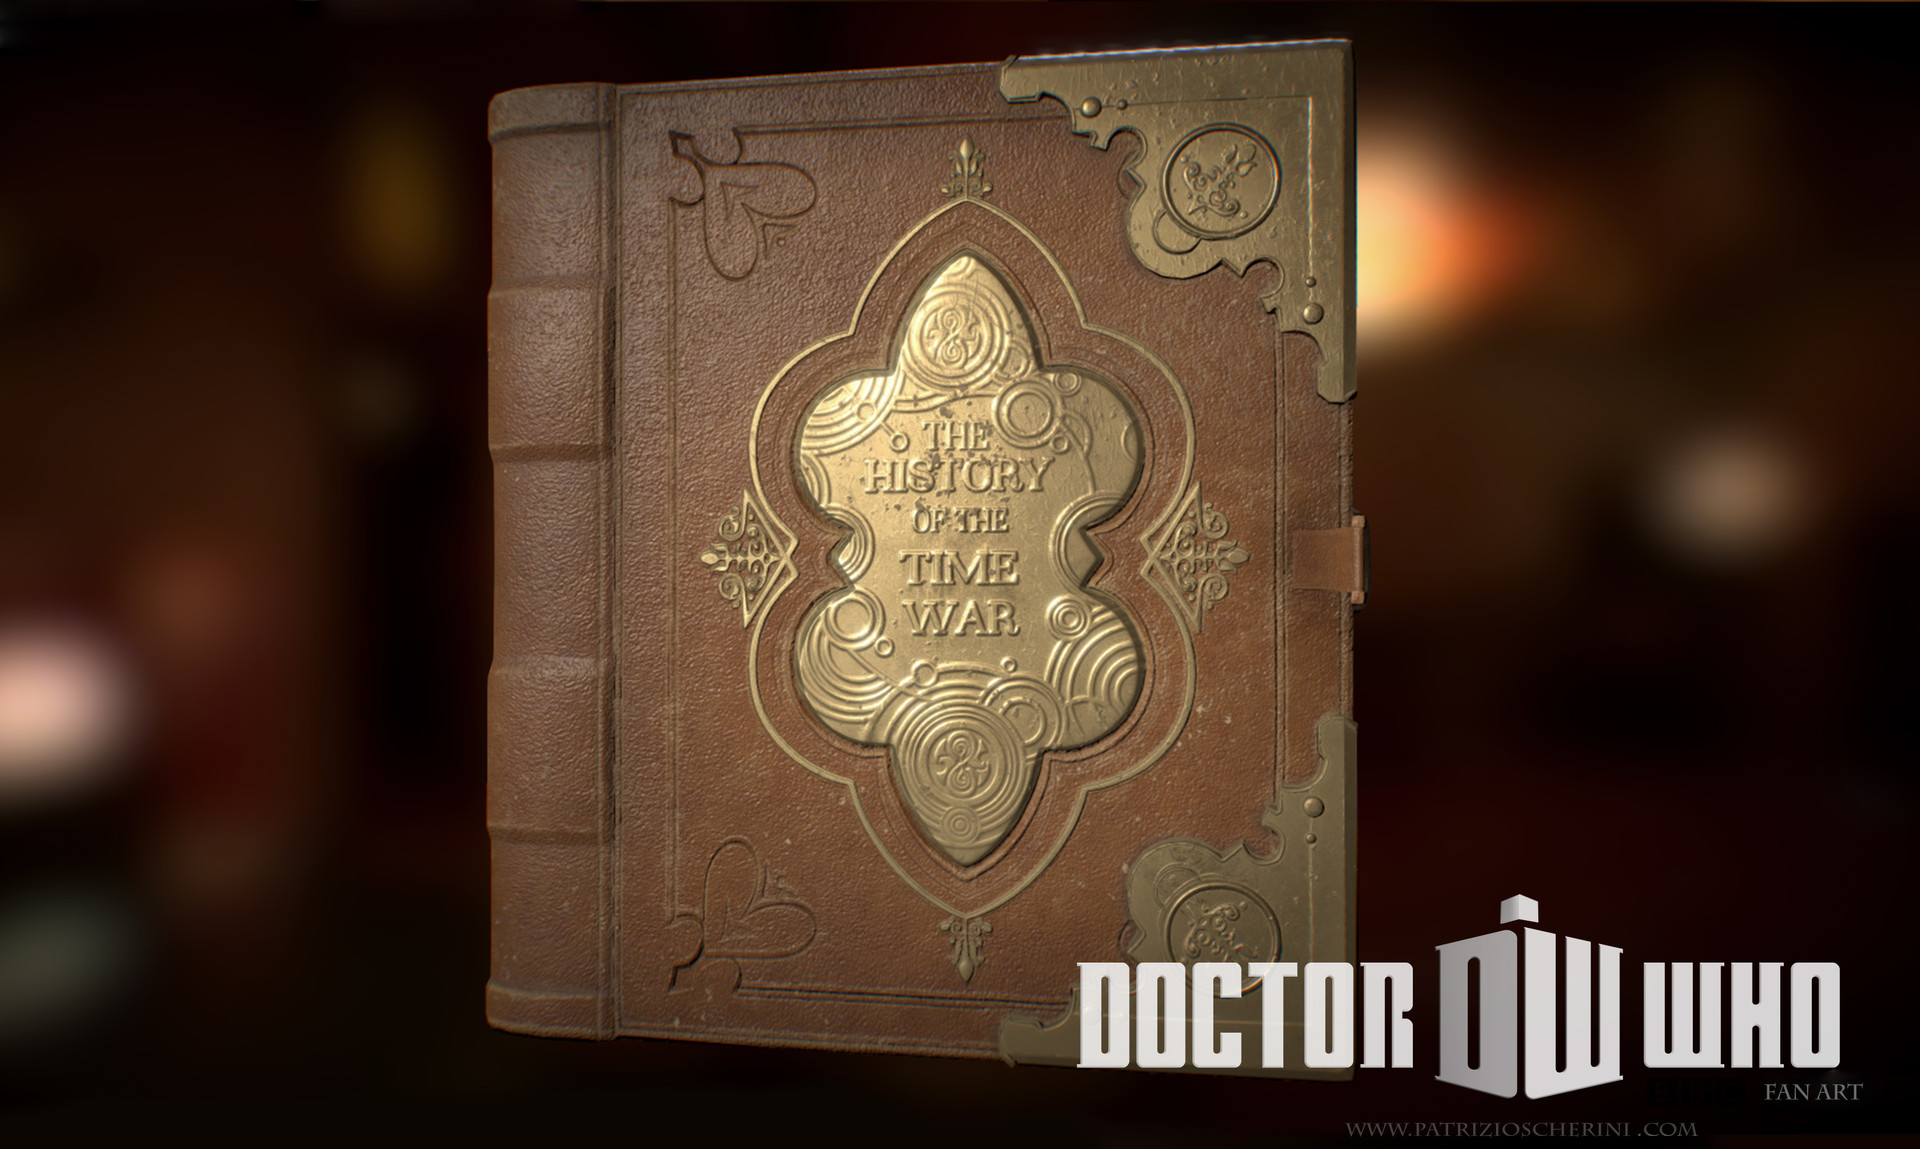 Doctor Who - History of the Time Lord Book